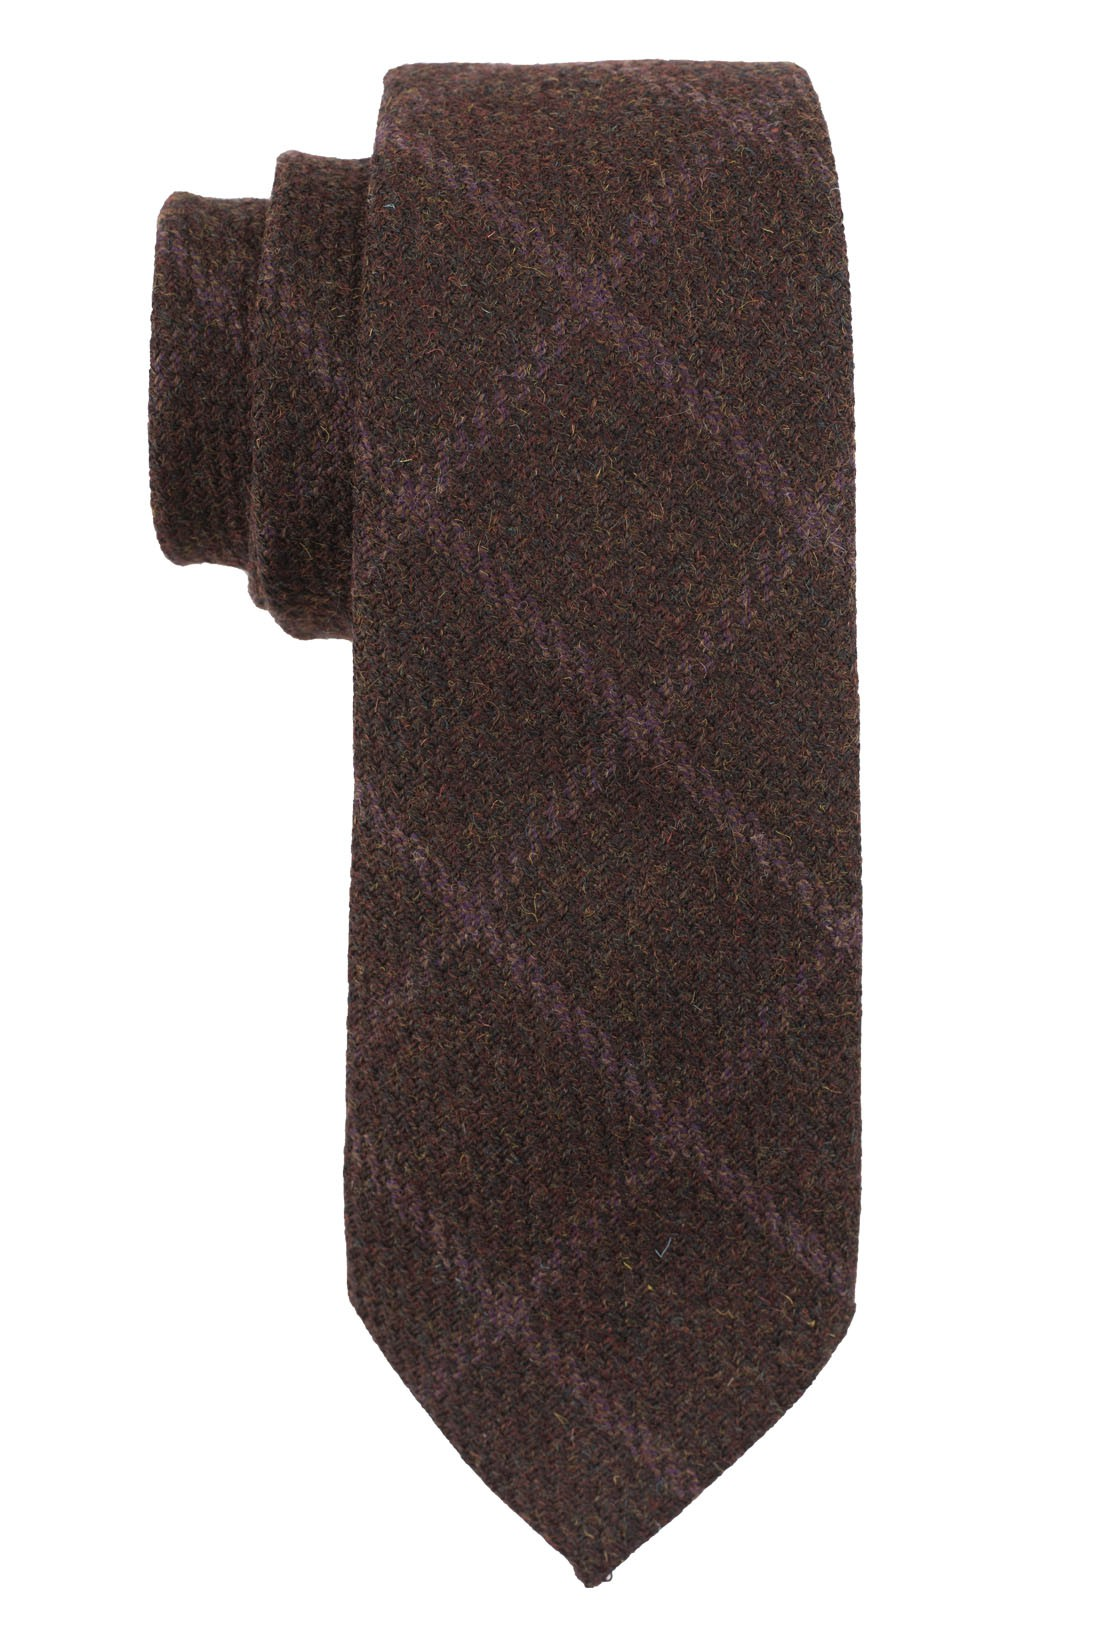 Brown With Purple Checks Necktie